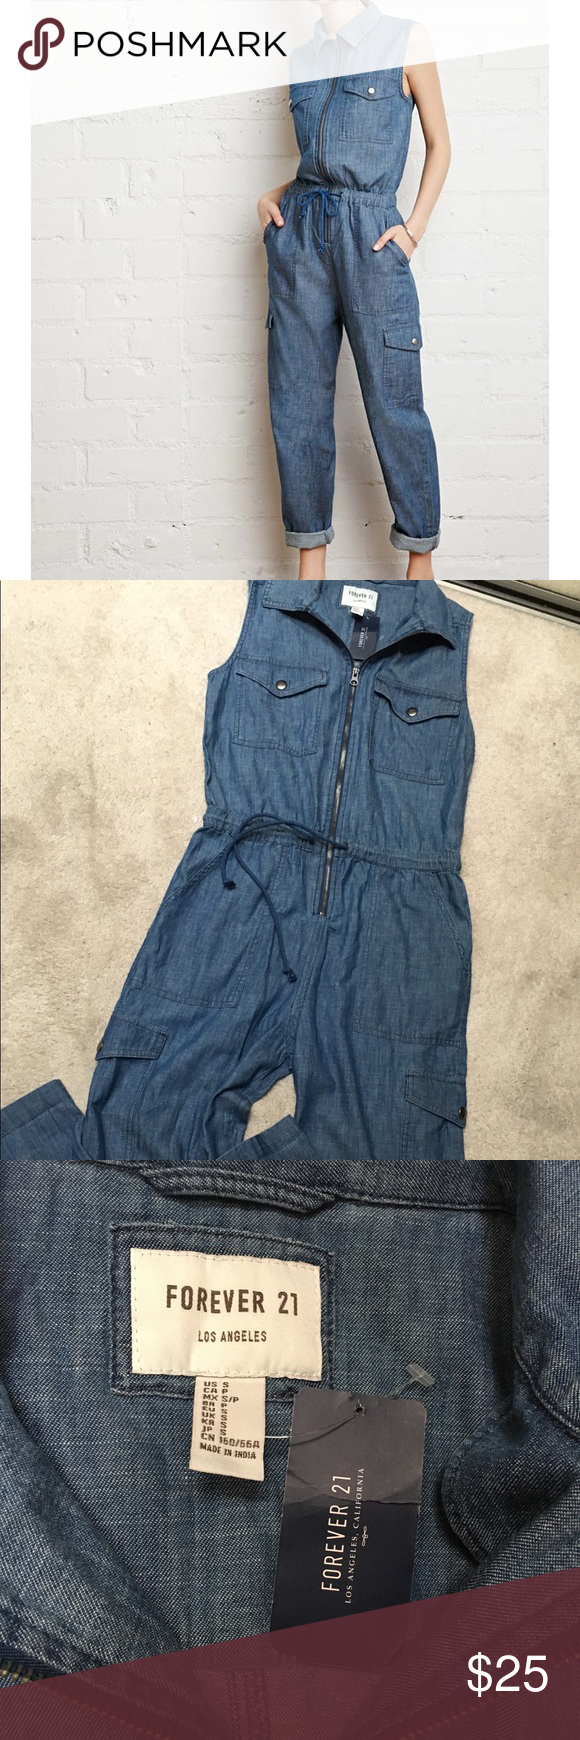 4abf9b00776 🎉Host pick🎉NWT Forever 21 Chambray Jumpsuit 🎉Host pick🎉  weekend wear